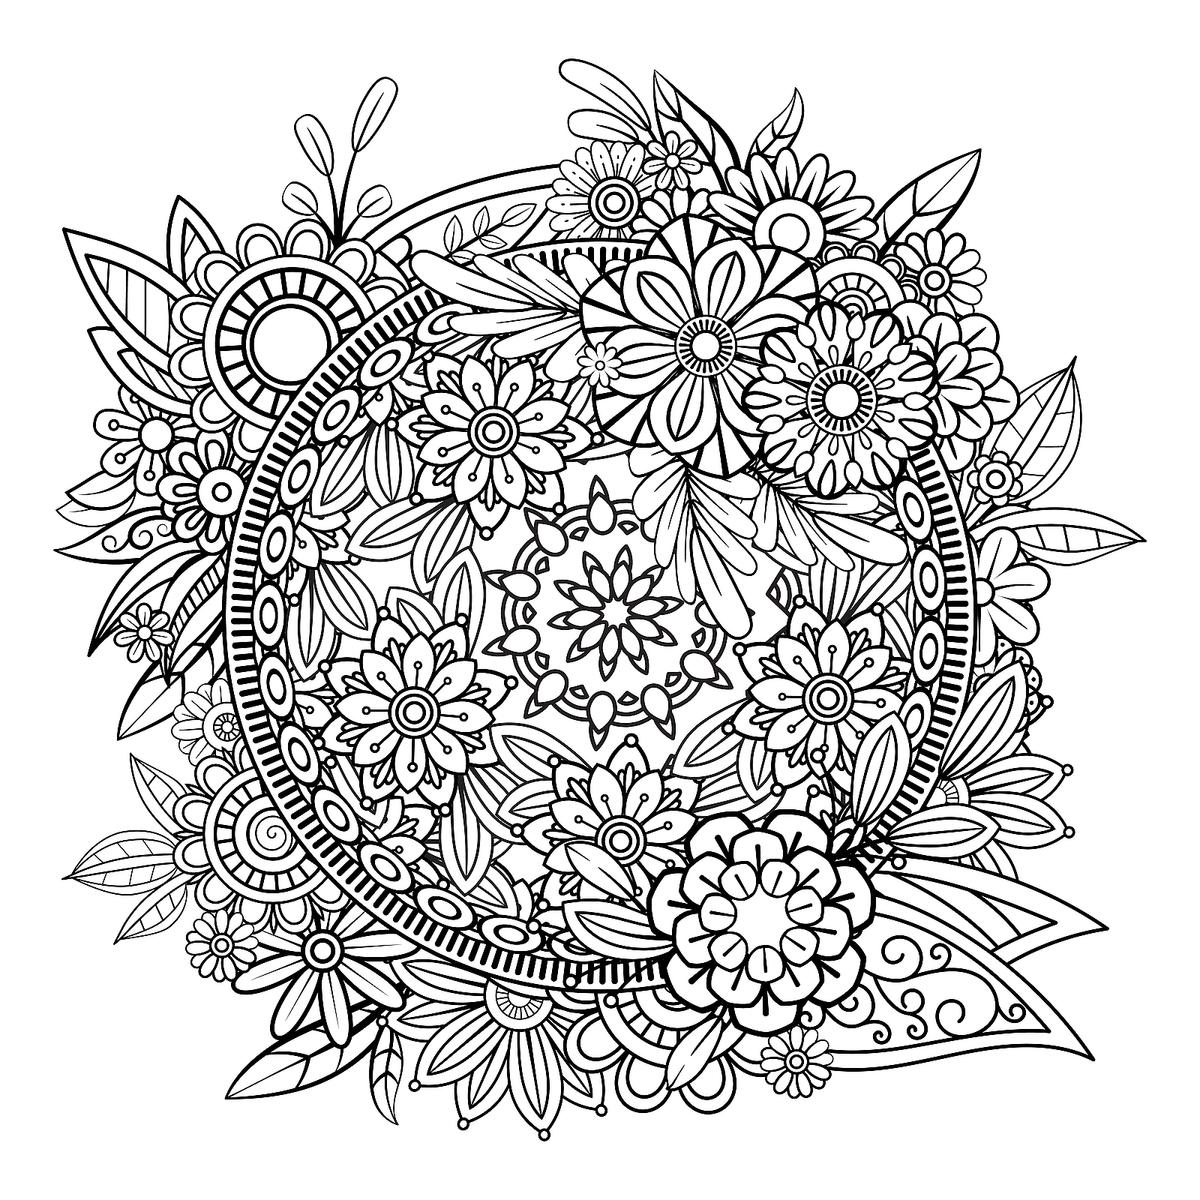 mandalas to color for adults mandala coloring pages printable coloring pages of to mandalas adults for color